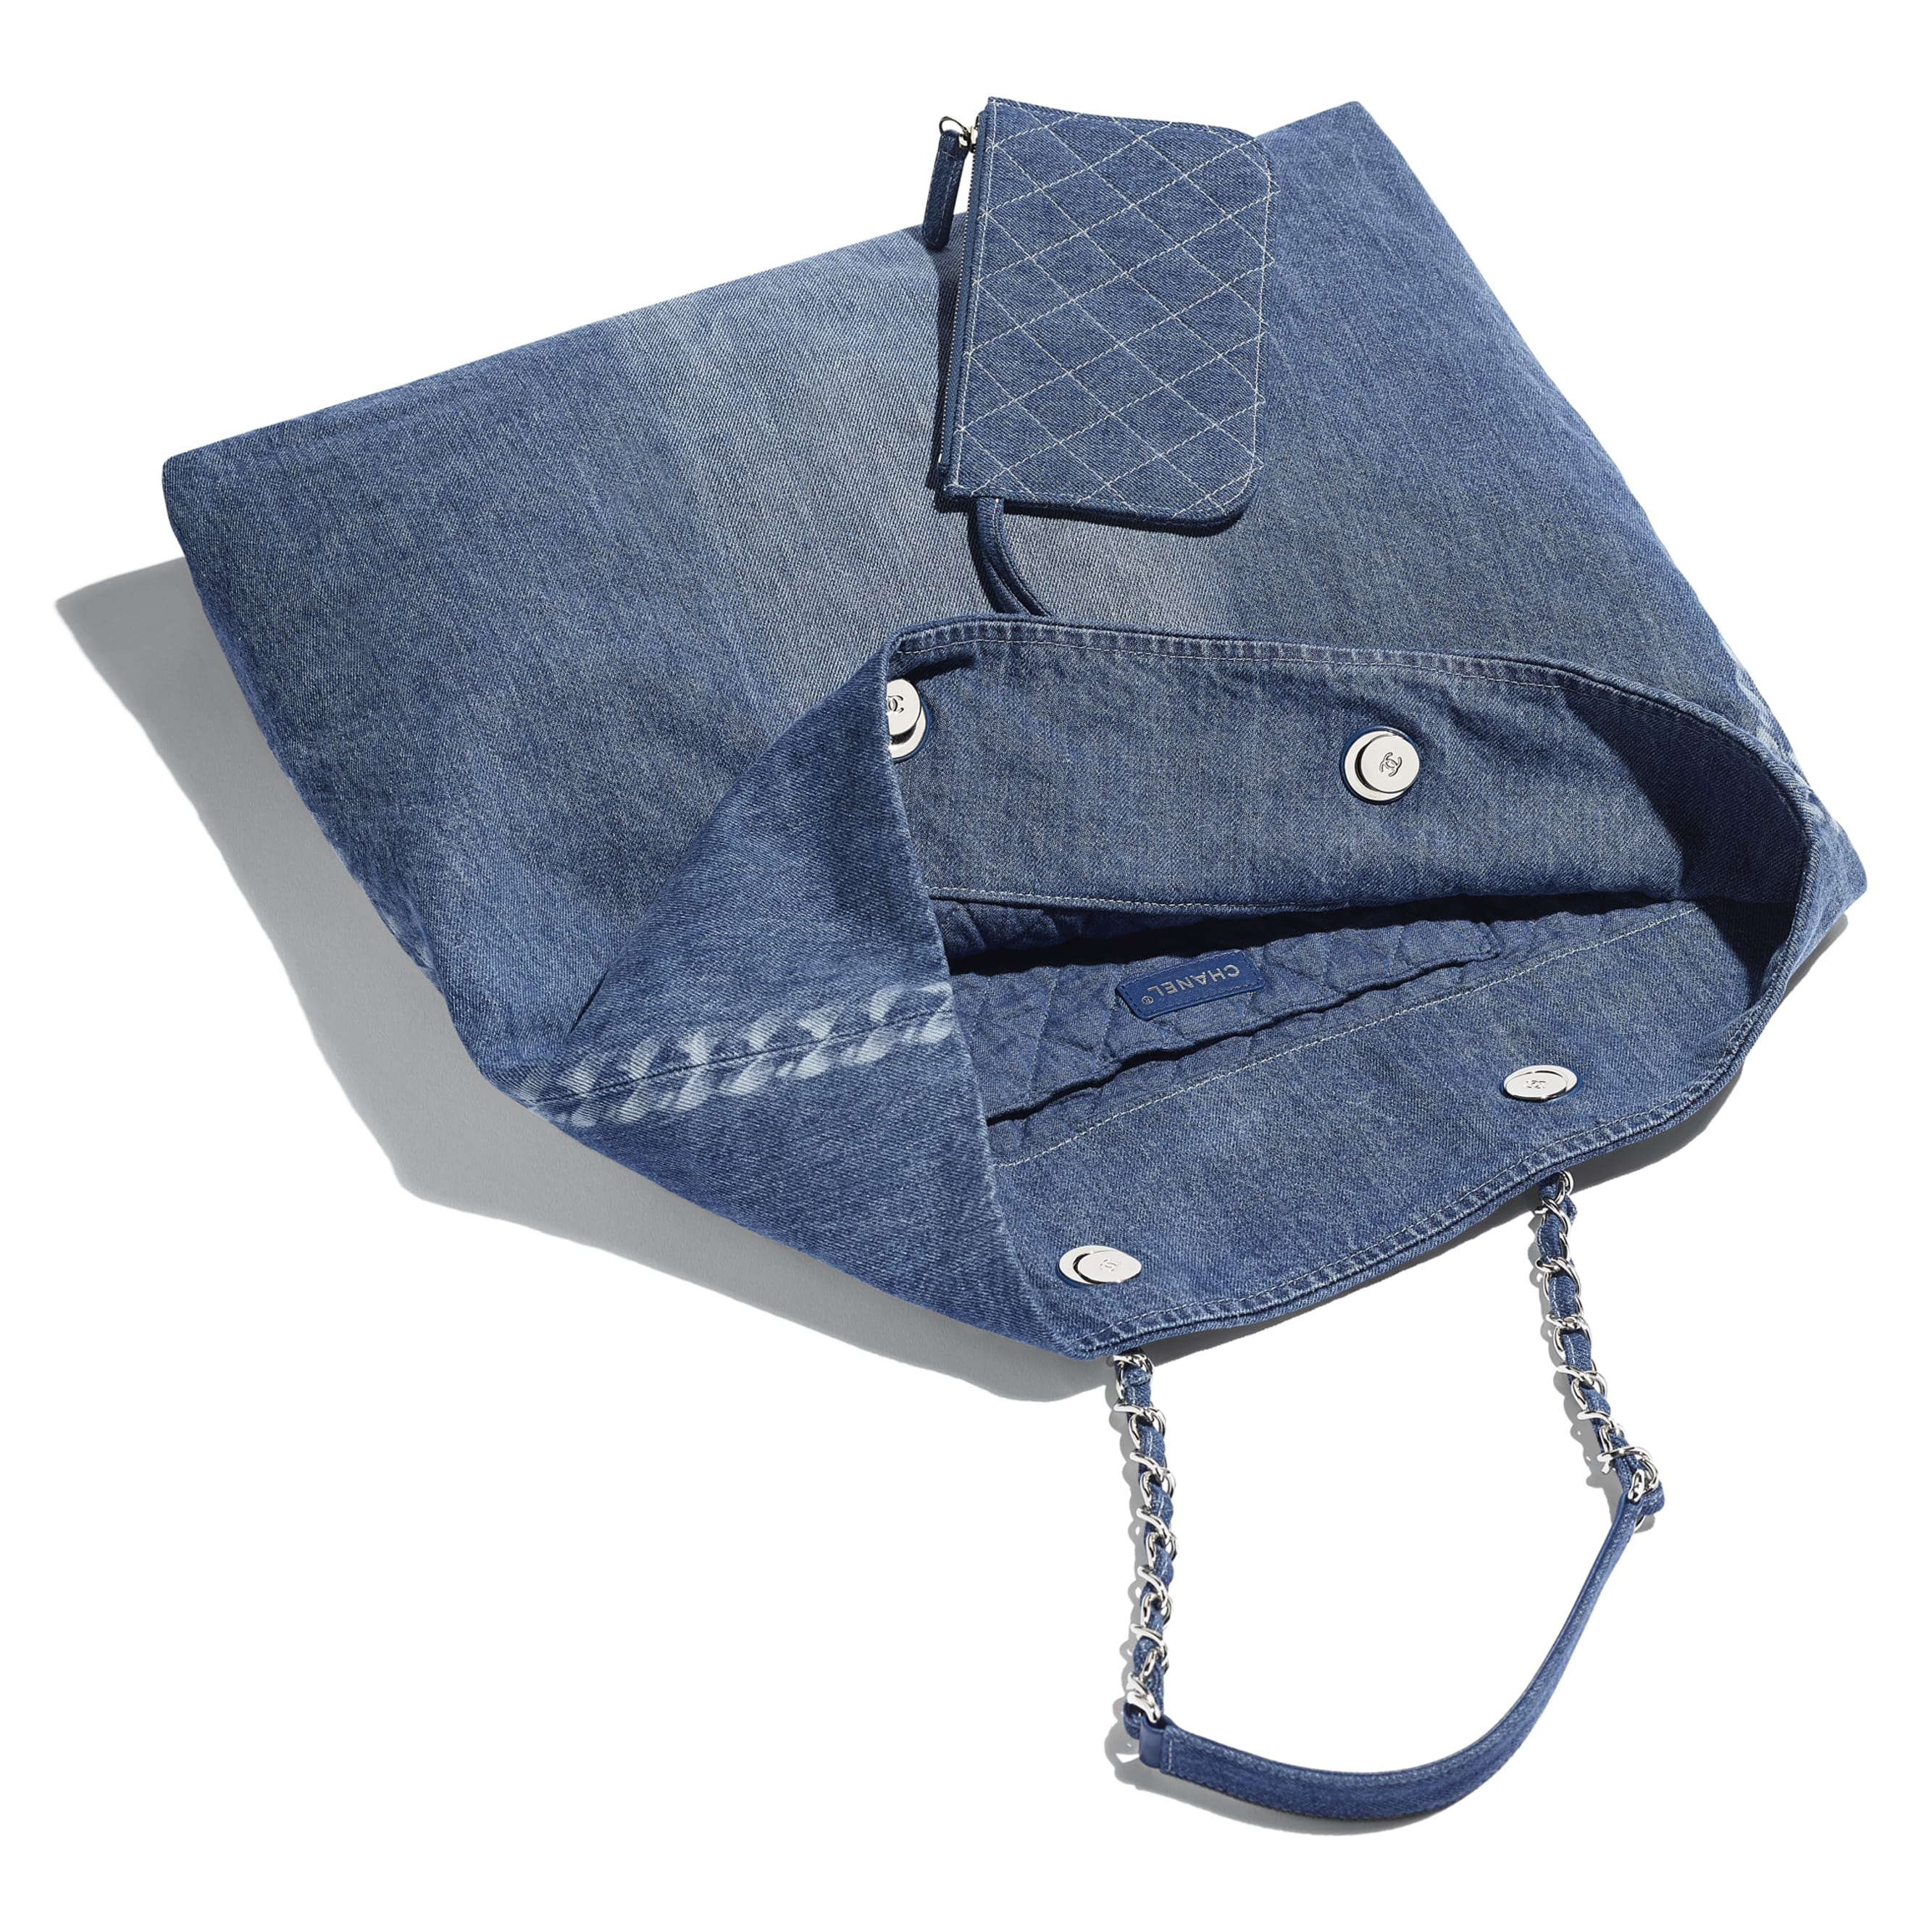 ... Large Shopping Bag - Blue - Printed Denim   Silver-Tone Metal - Other  view 5fcf7fe094958